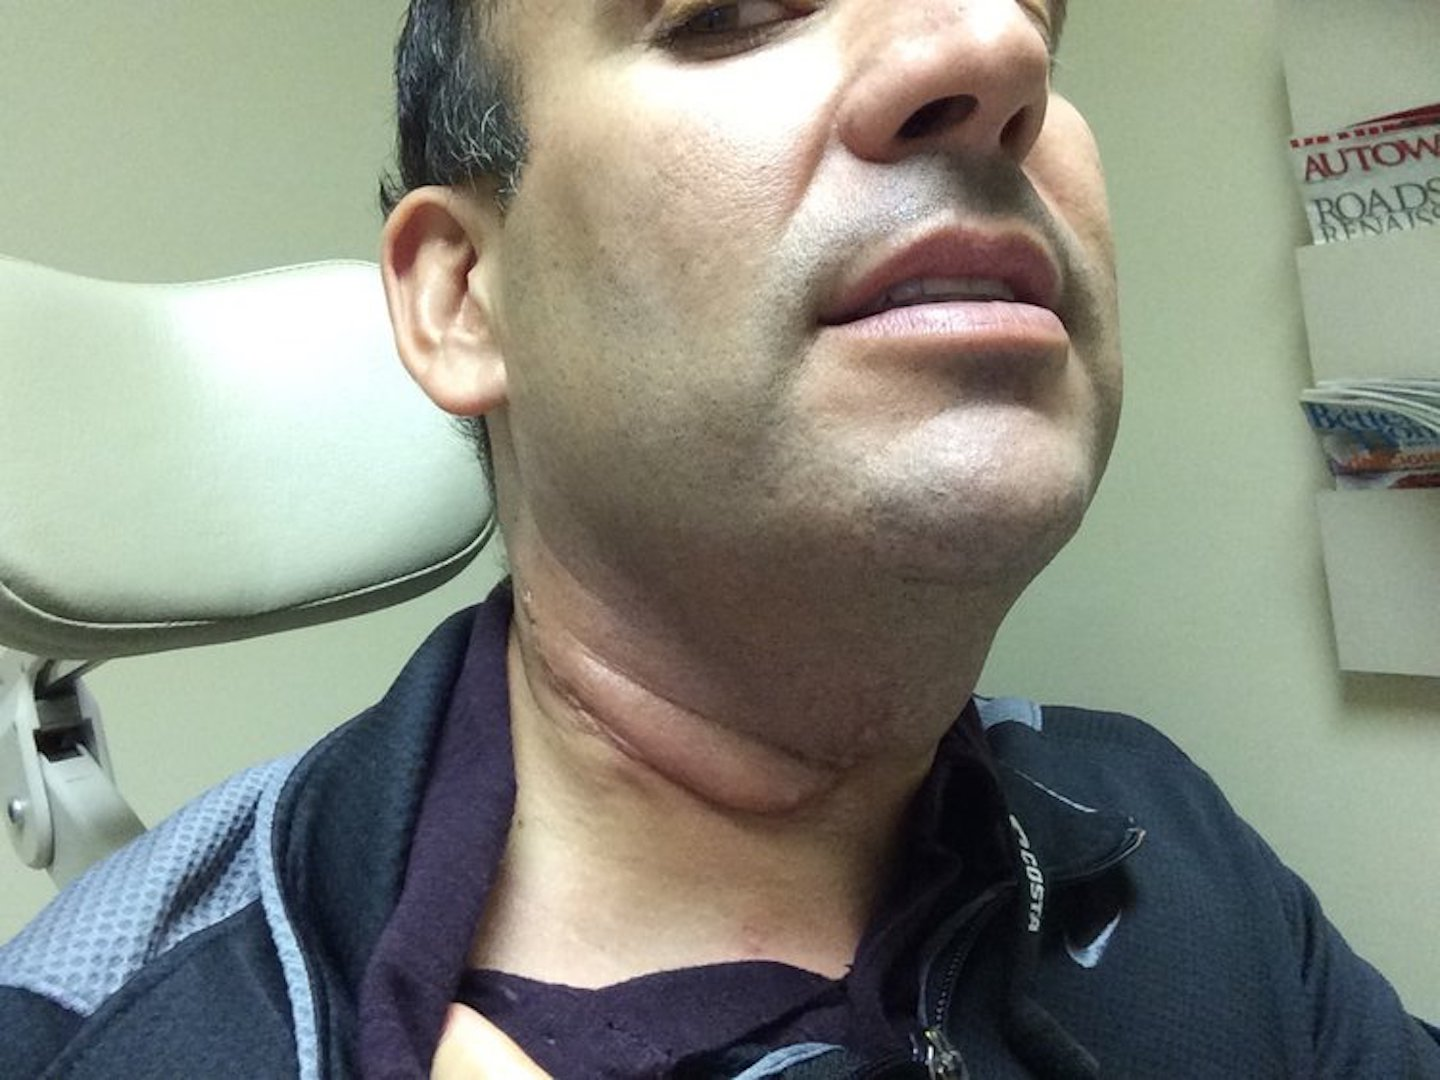 Hpv cancer of the neck - Hpv related head and neck cancer symptoms